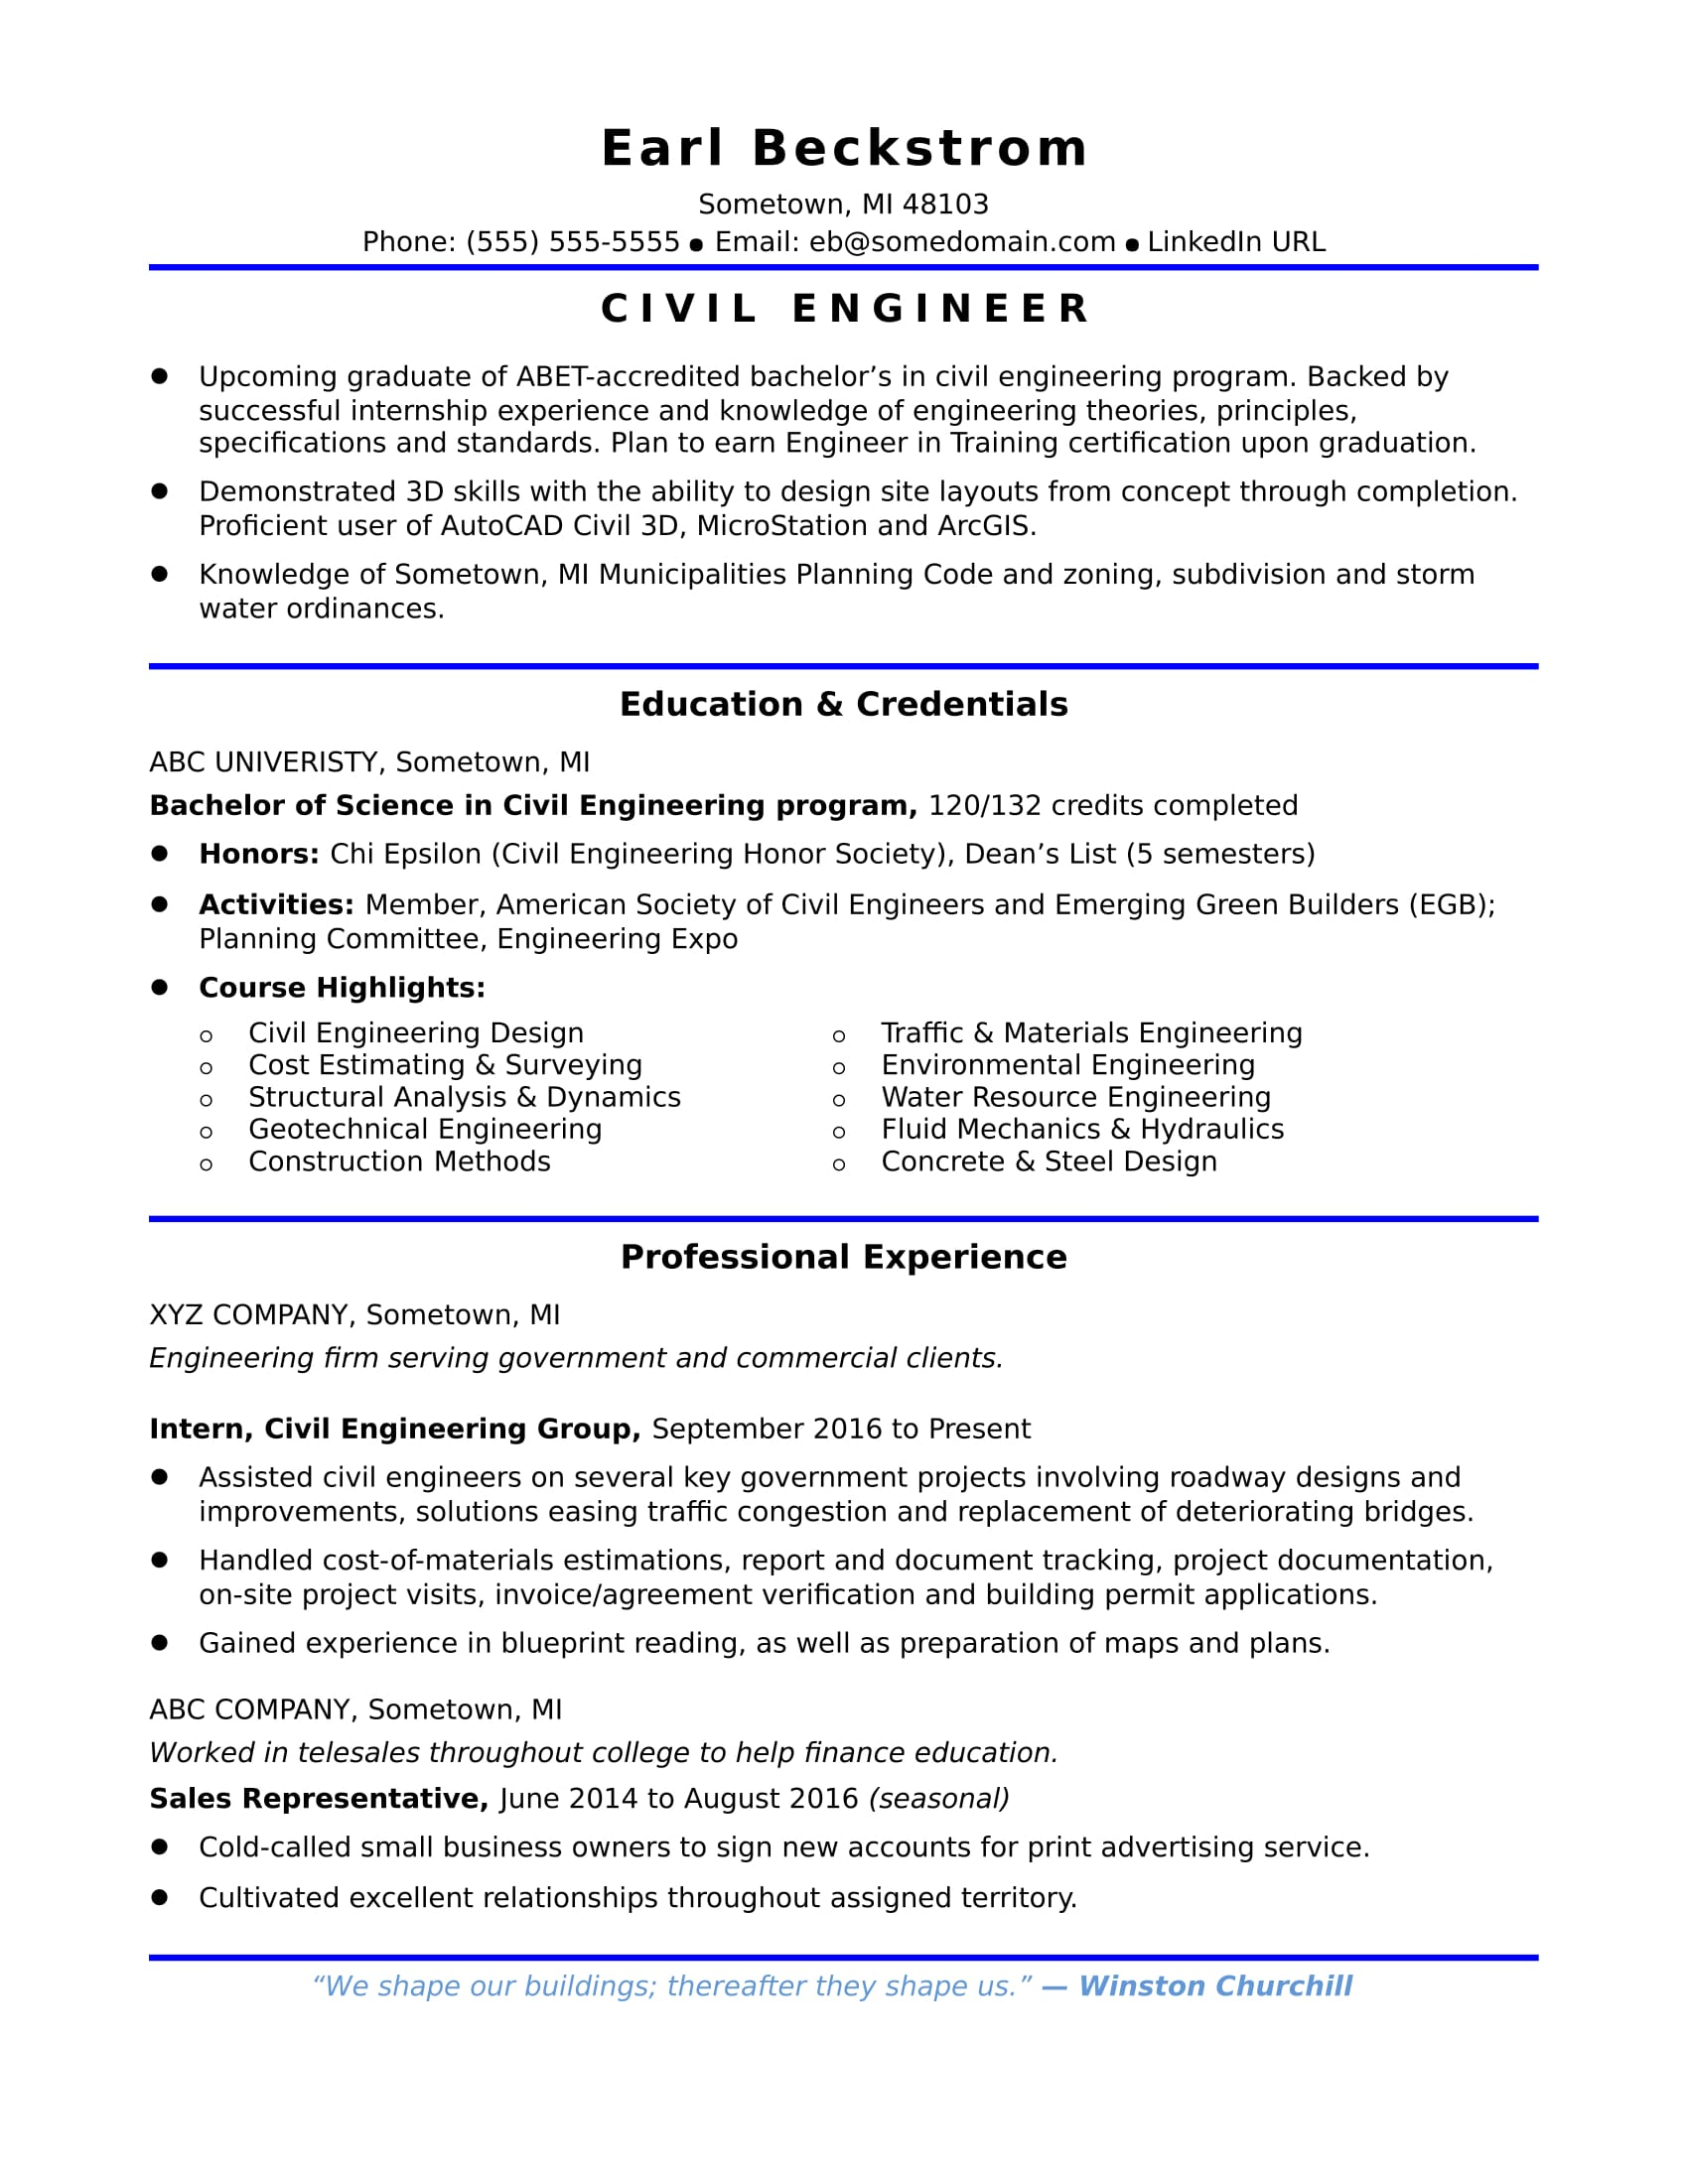 Sample Engineering Resume Sample Resume For An Entry Level Civil Engineer Monster